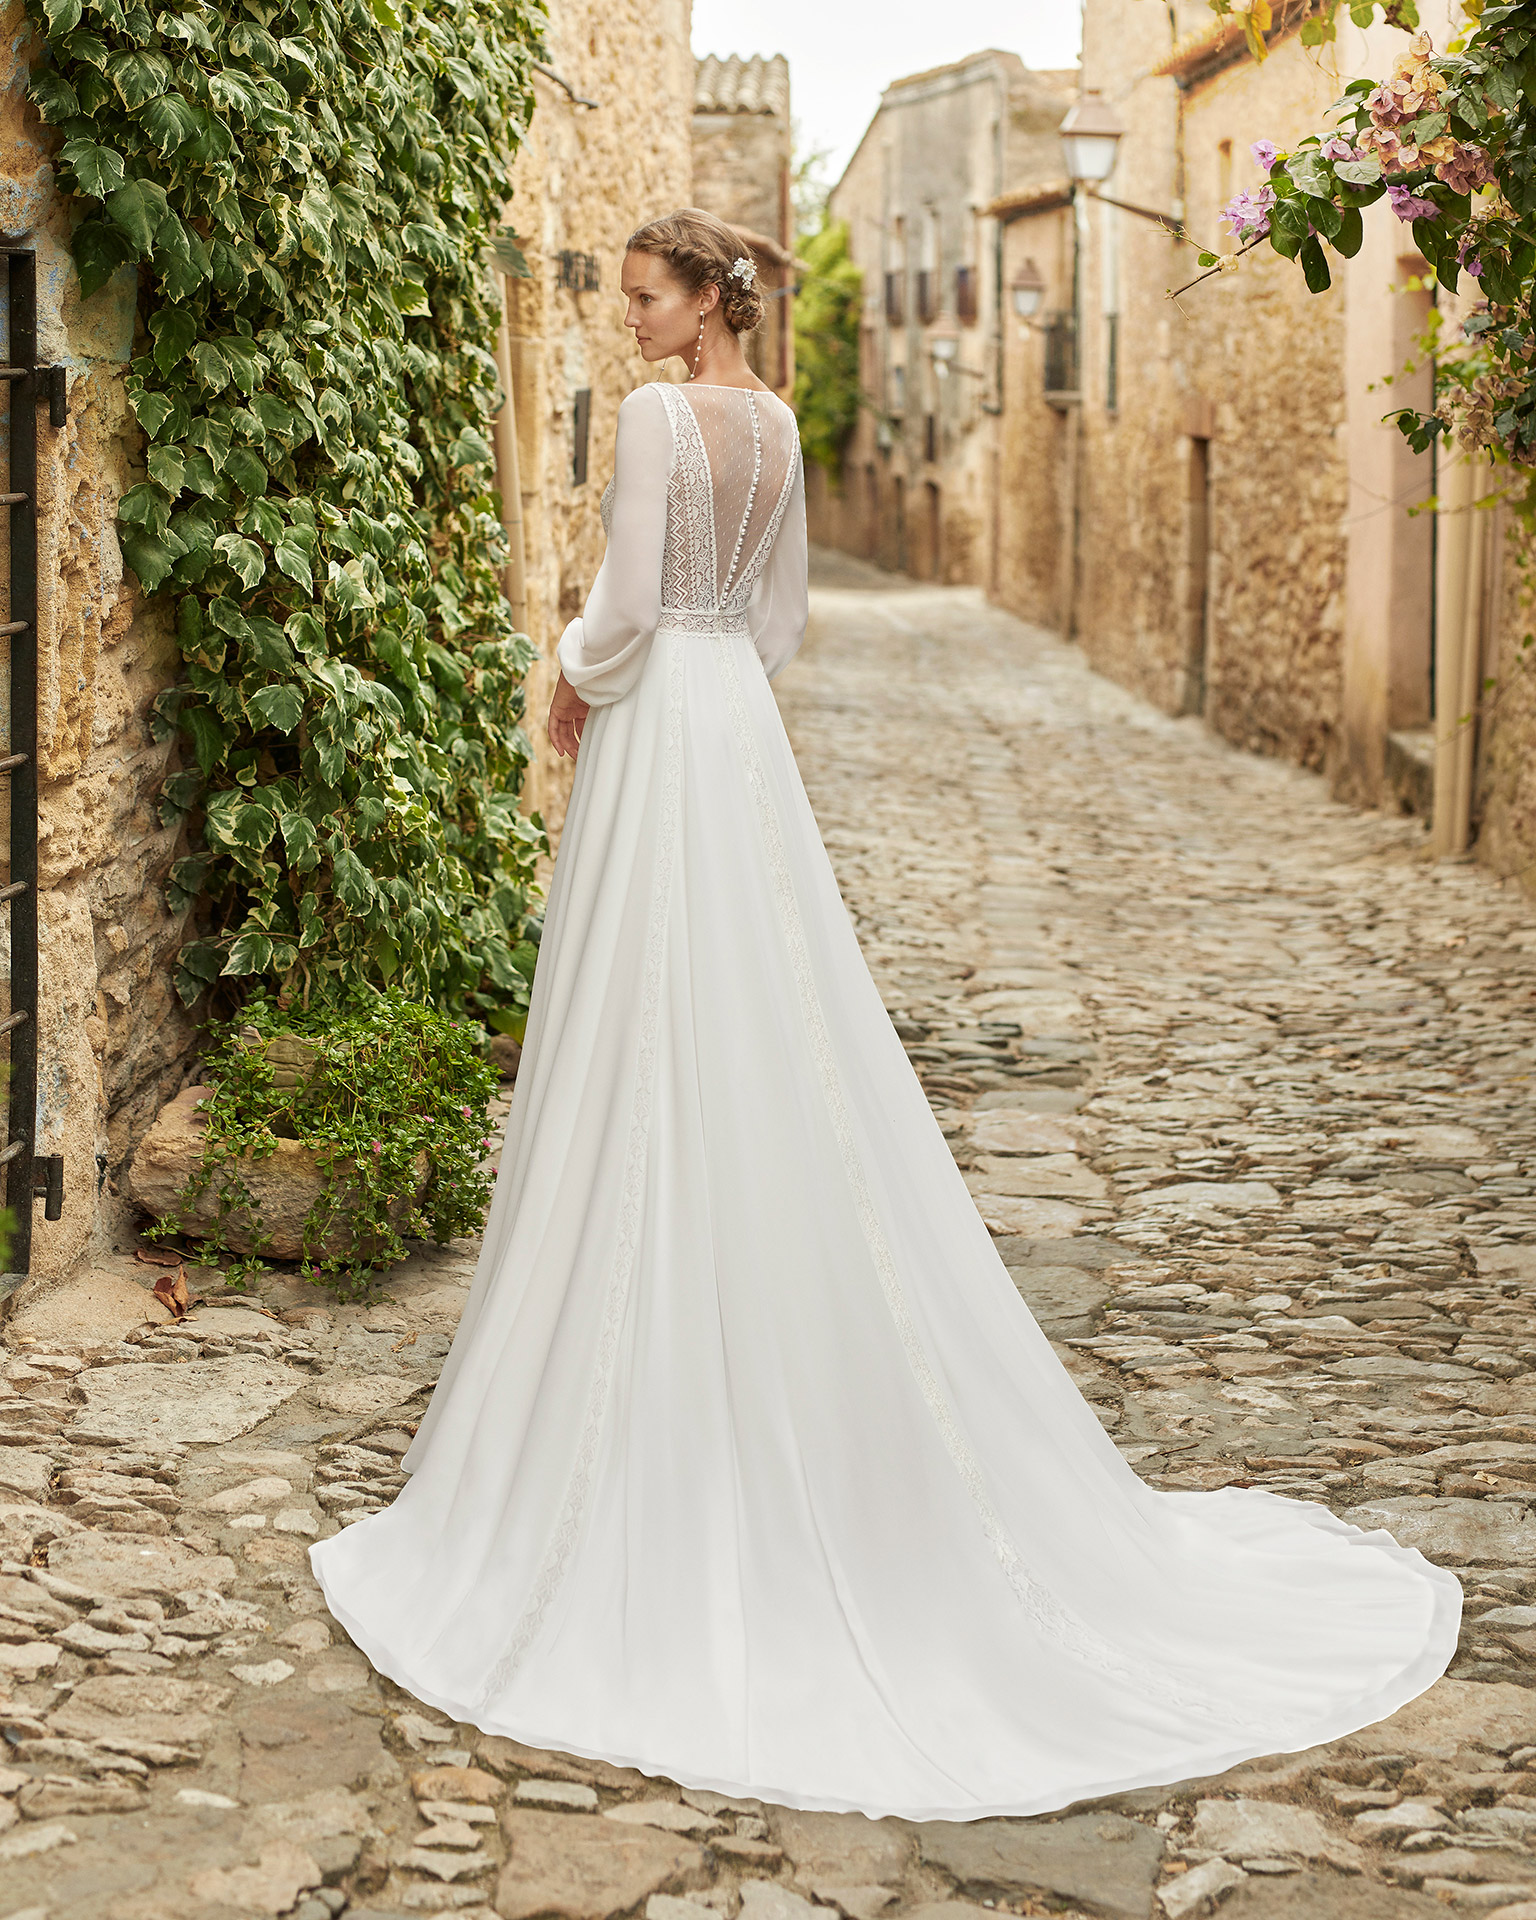 Boho-chic ballgown-style wedding dress with a lace bodice and lace edging applied to the skirt; with a V-neckline, a closed back with dot tulle and pearl buttons, and long georgette sleeves with a lace edging on the cuffs. Alma Novia model in georgette. 2022 ALMANOVIA Collection.